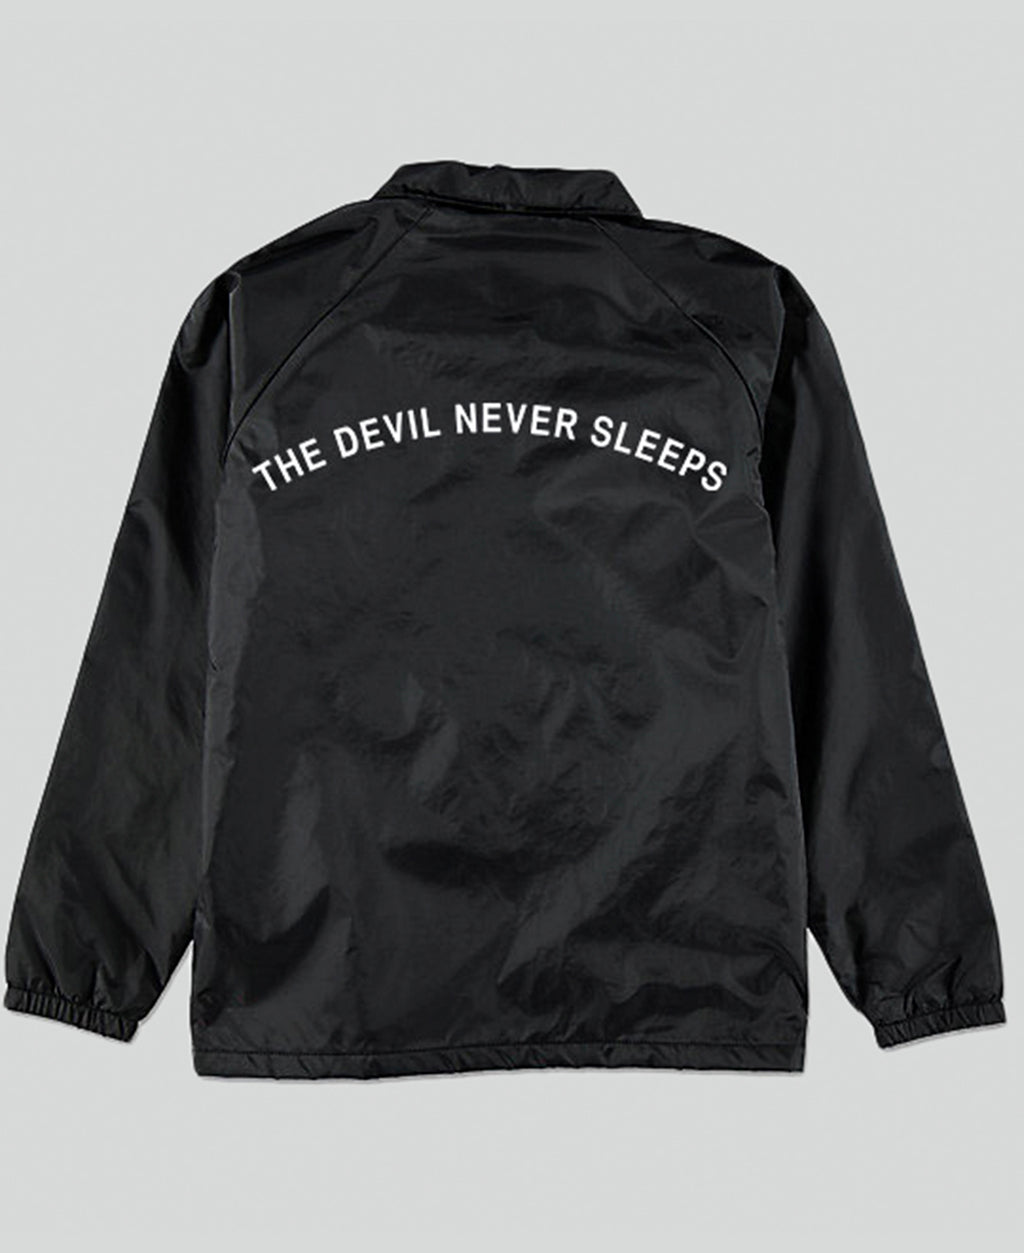 Devil Never Sleeps Jacket - The Anti Life